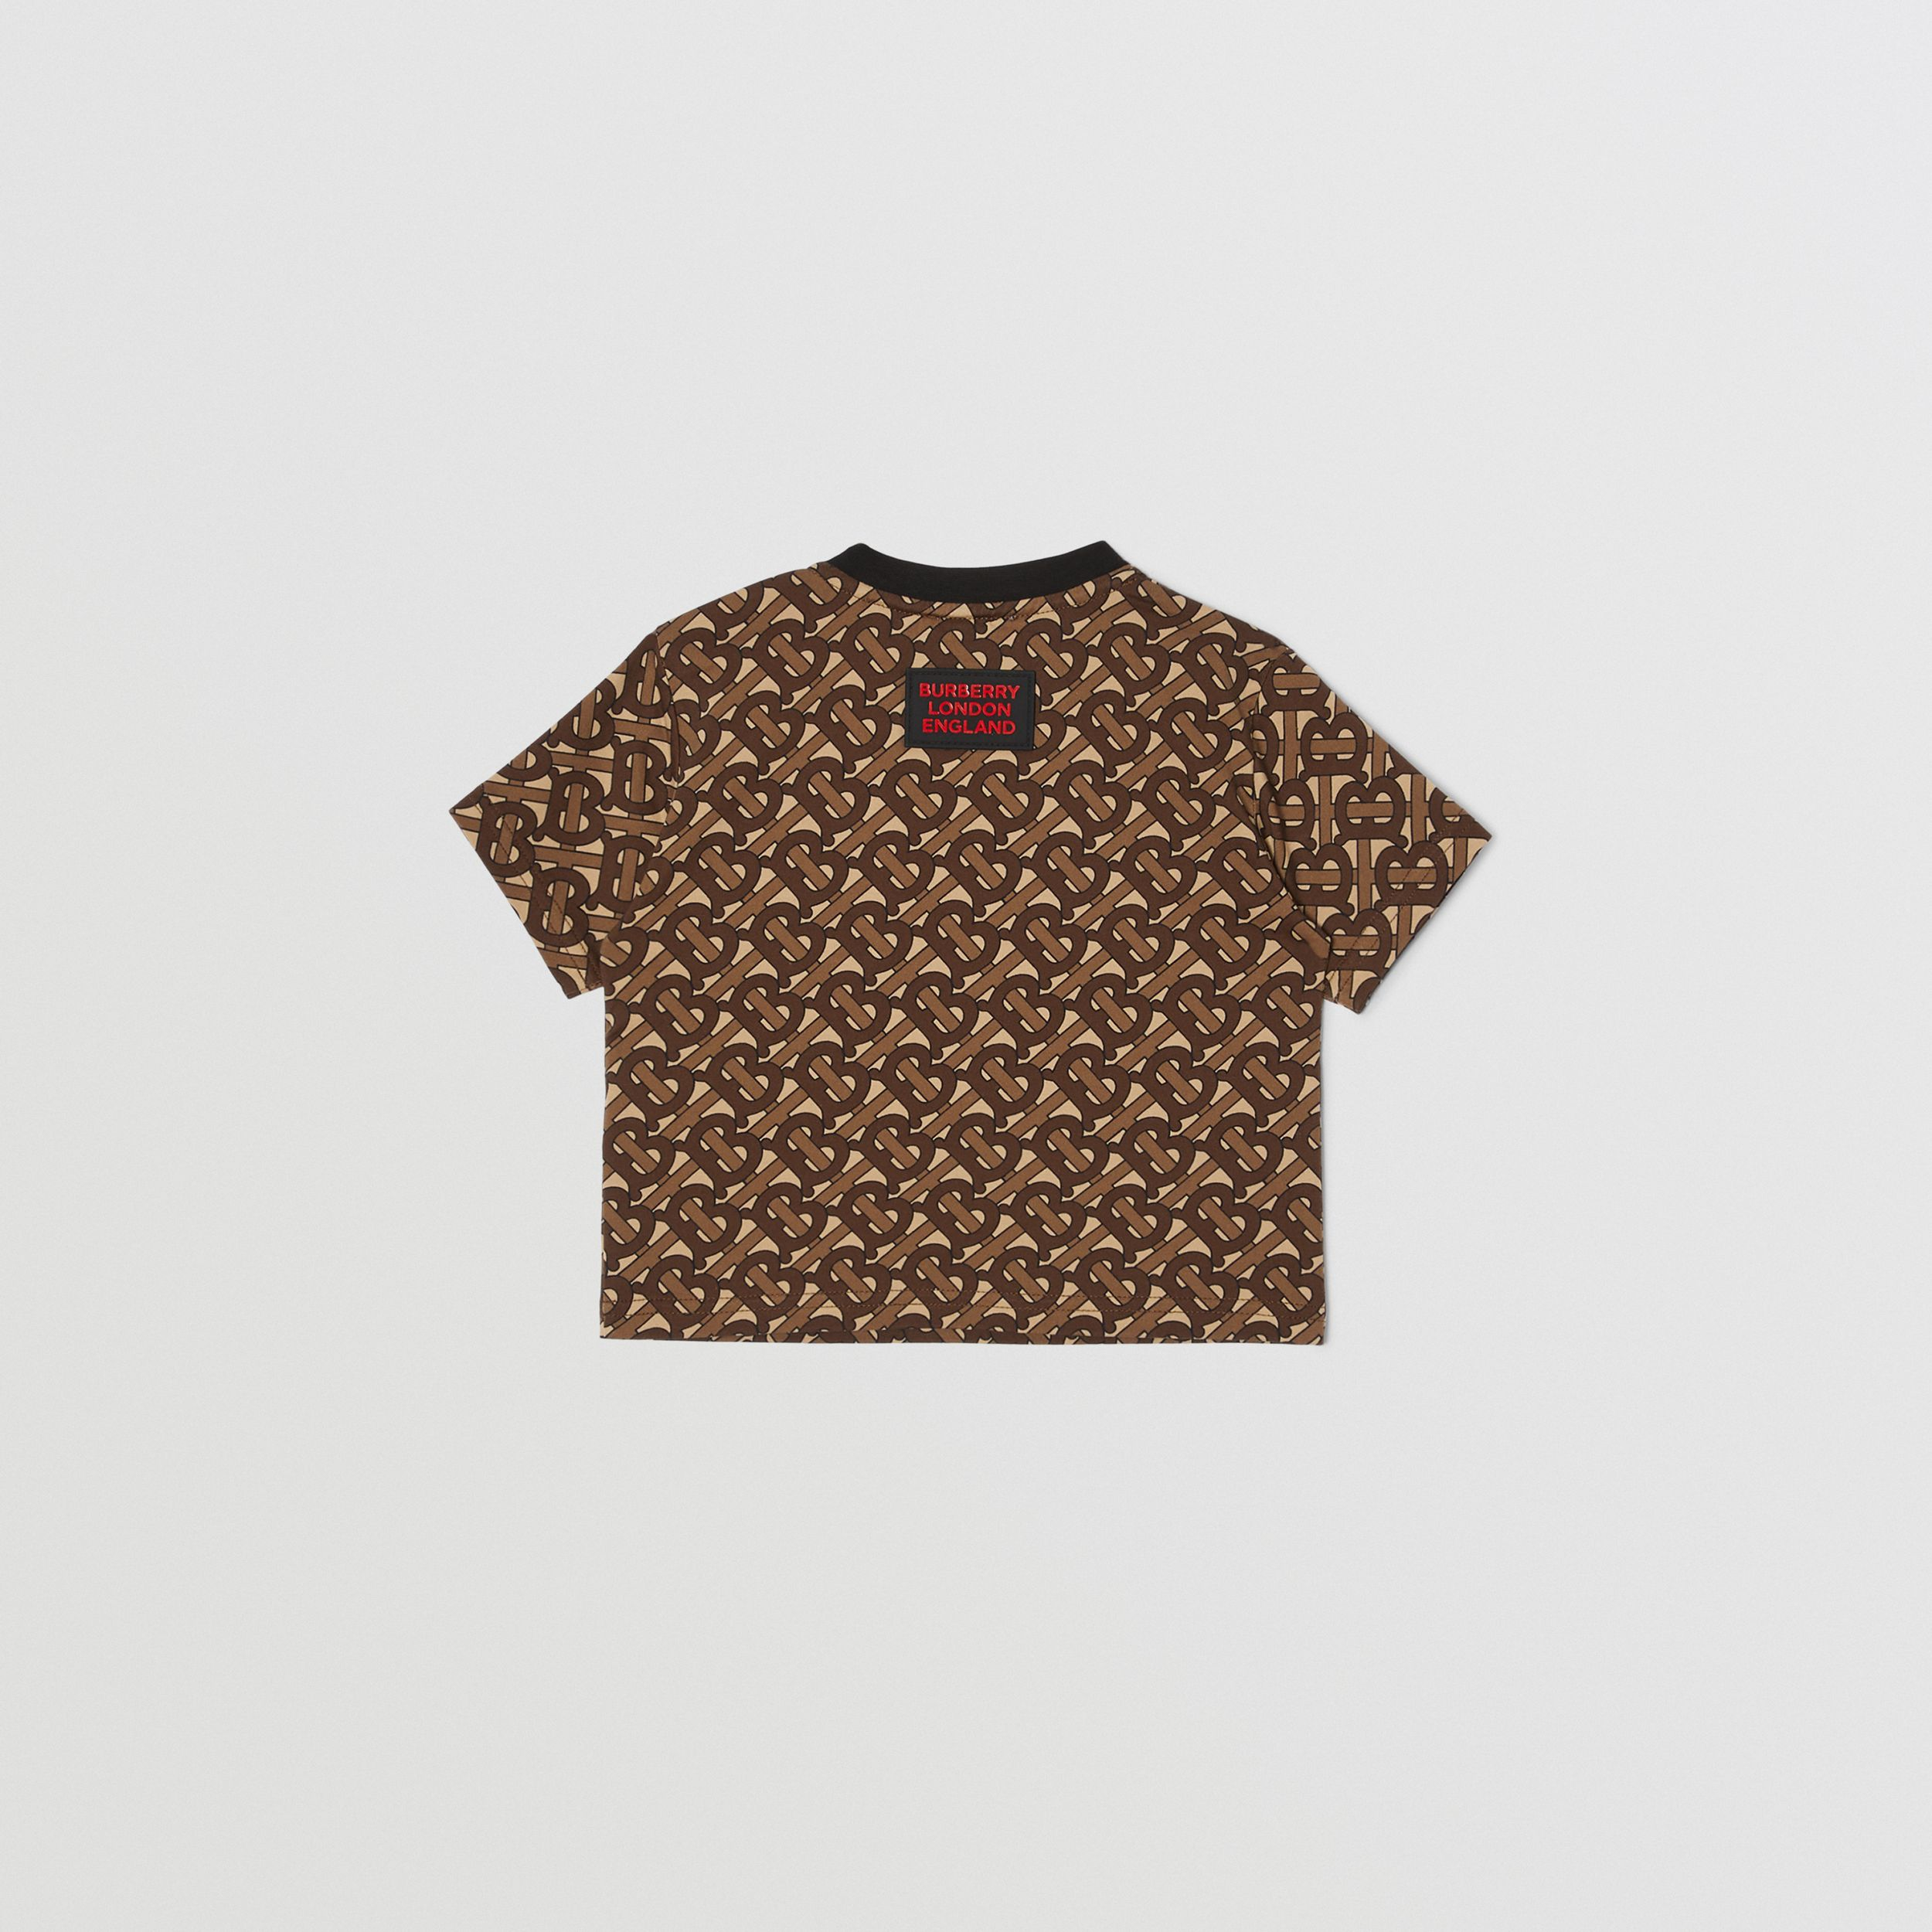 Monogram Stripe Print Cotton T-shirt in Bridle Brown - Children | Burberry - 4